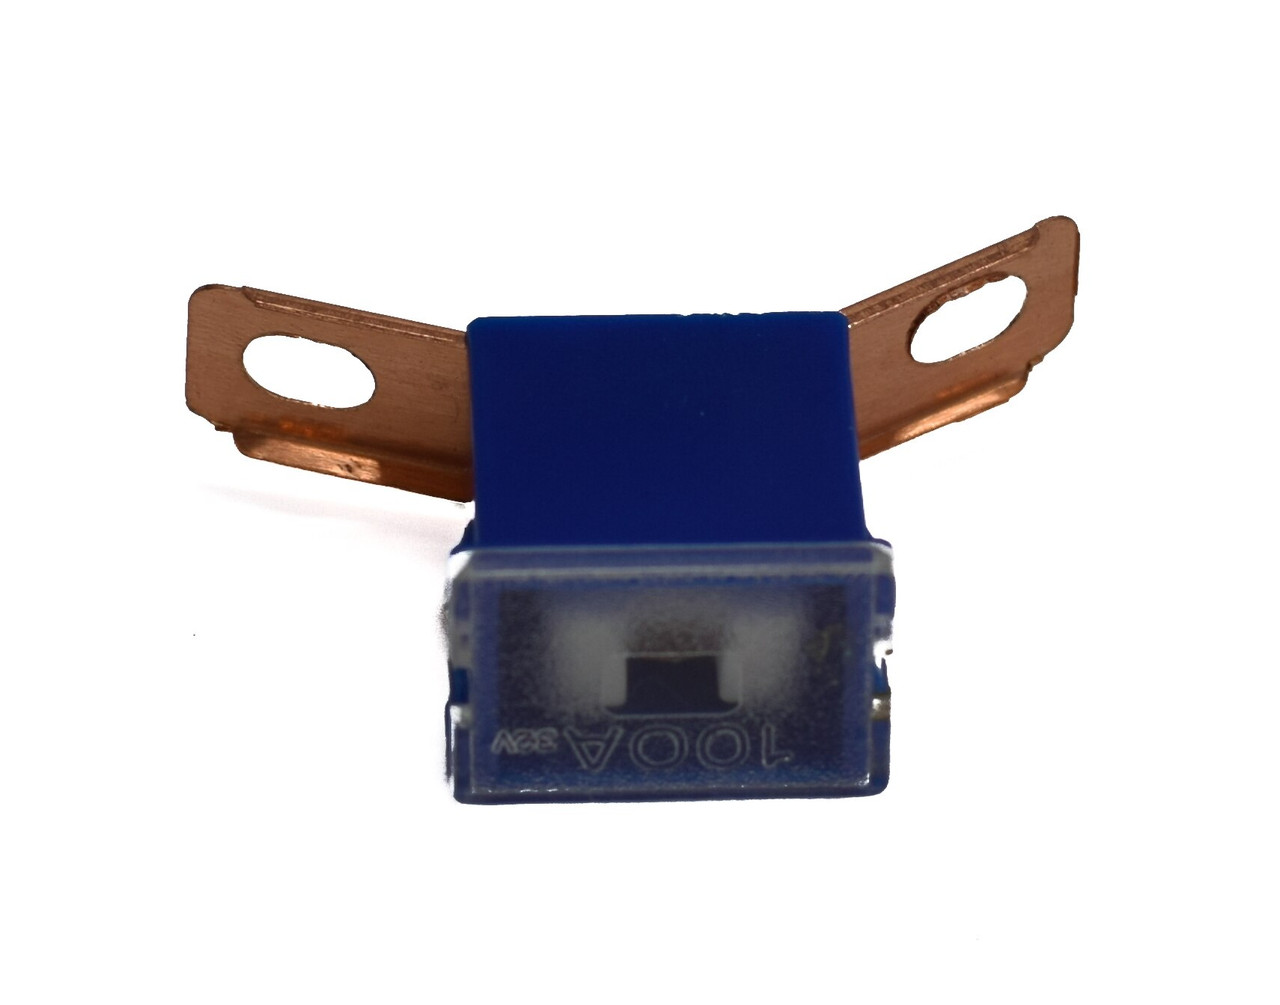 Raion Power Replacement RBC7 100A Fuse For APC SU1400NET